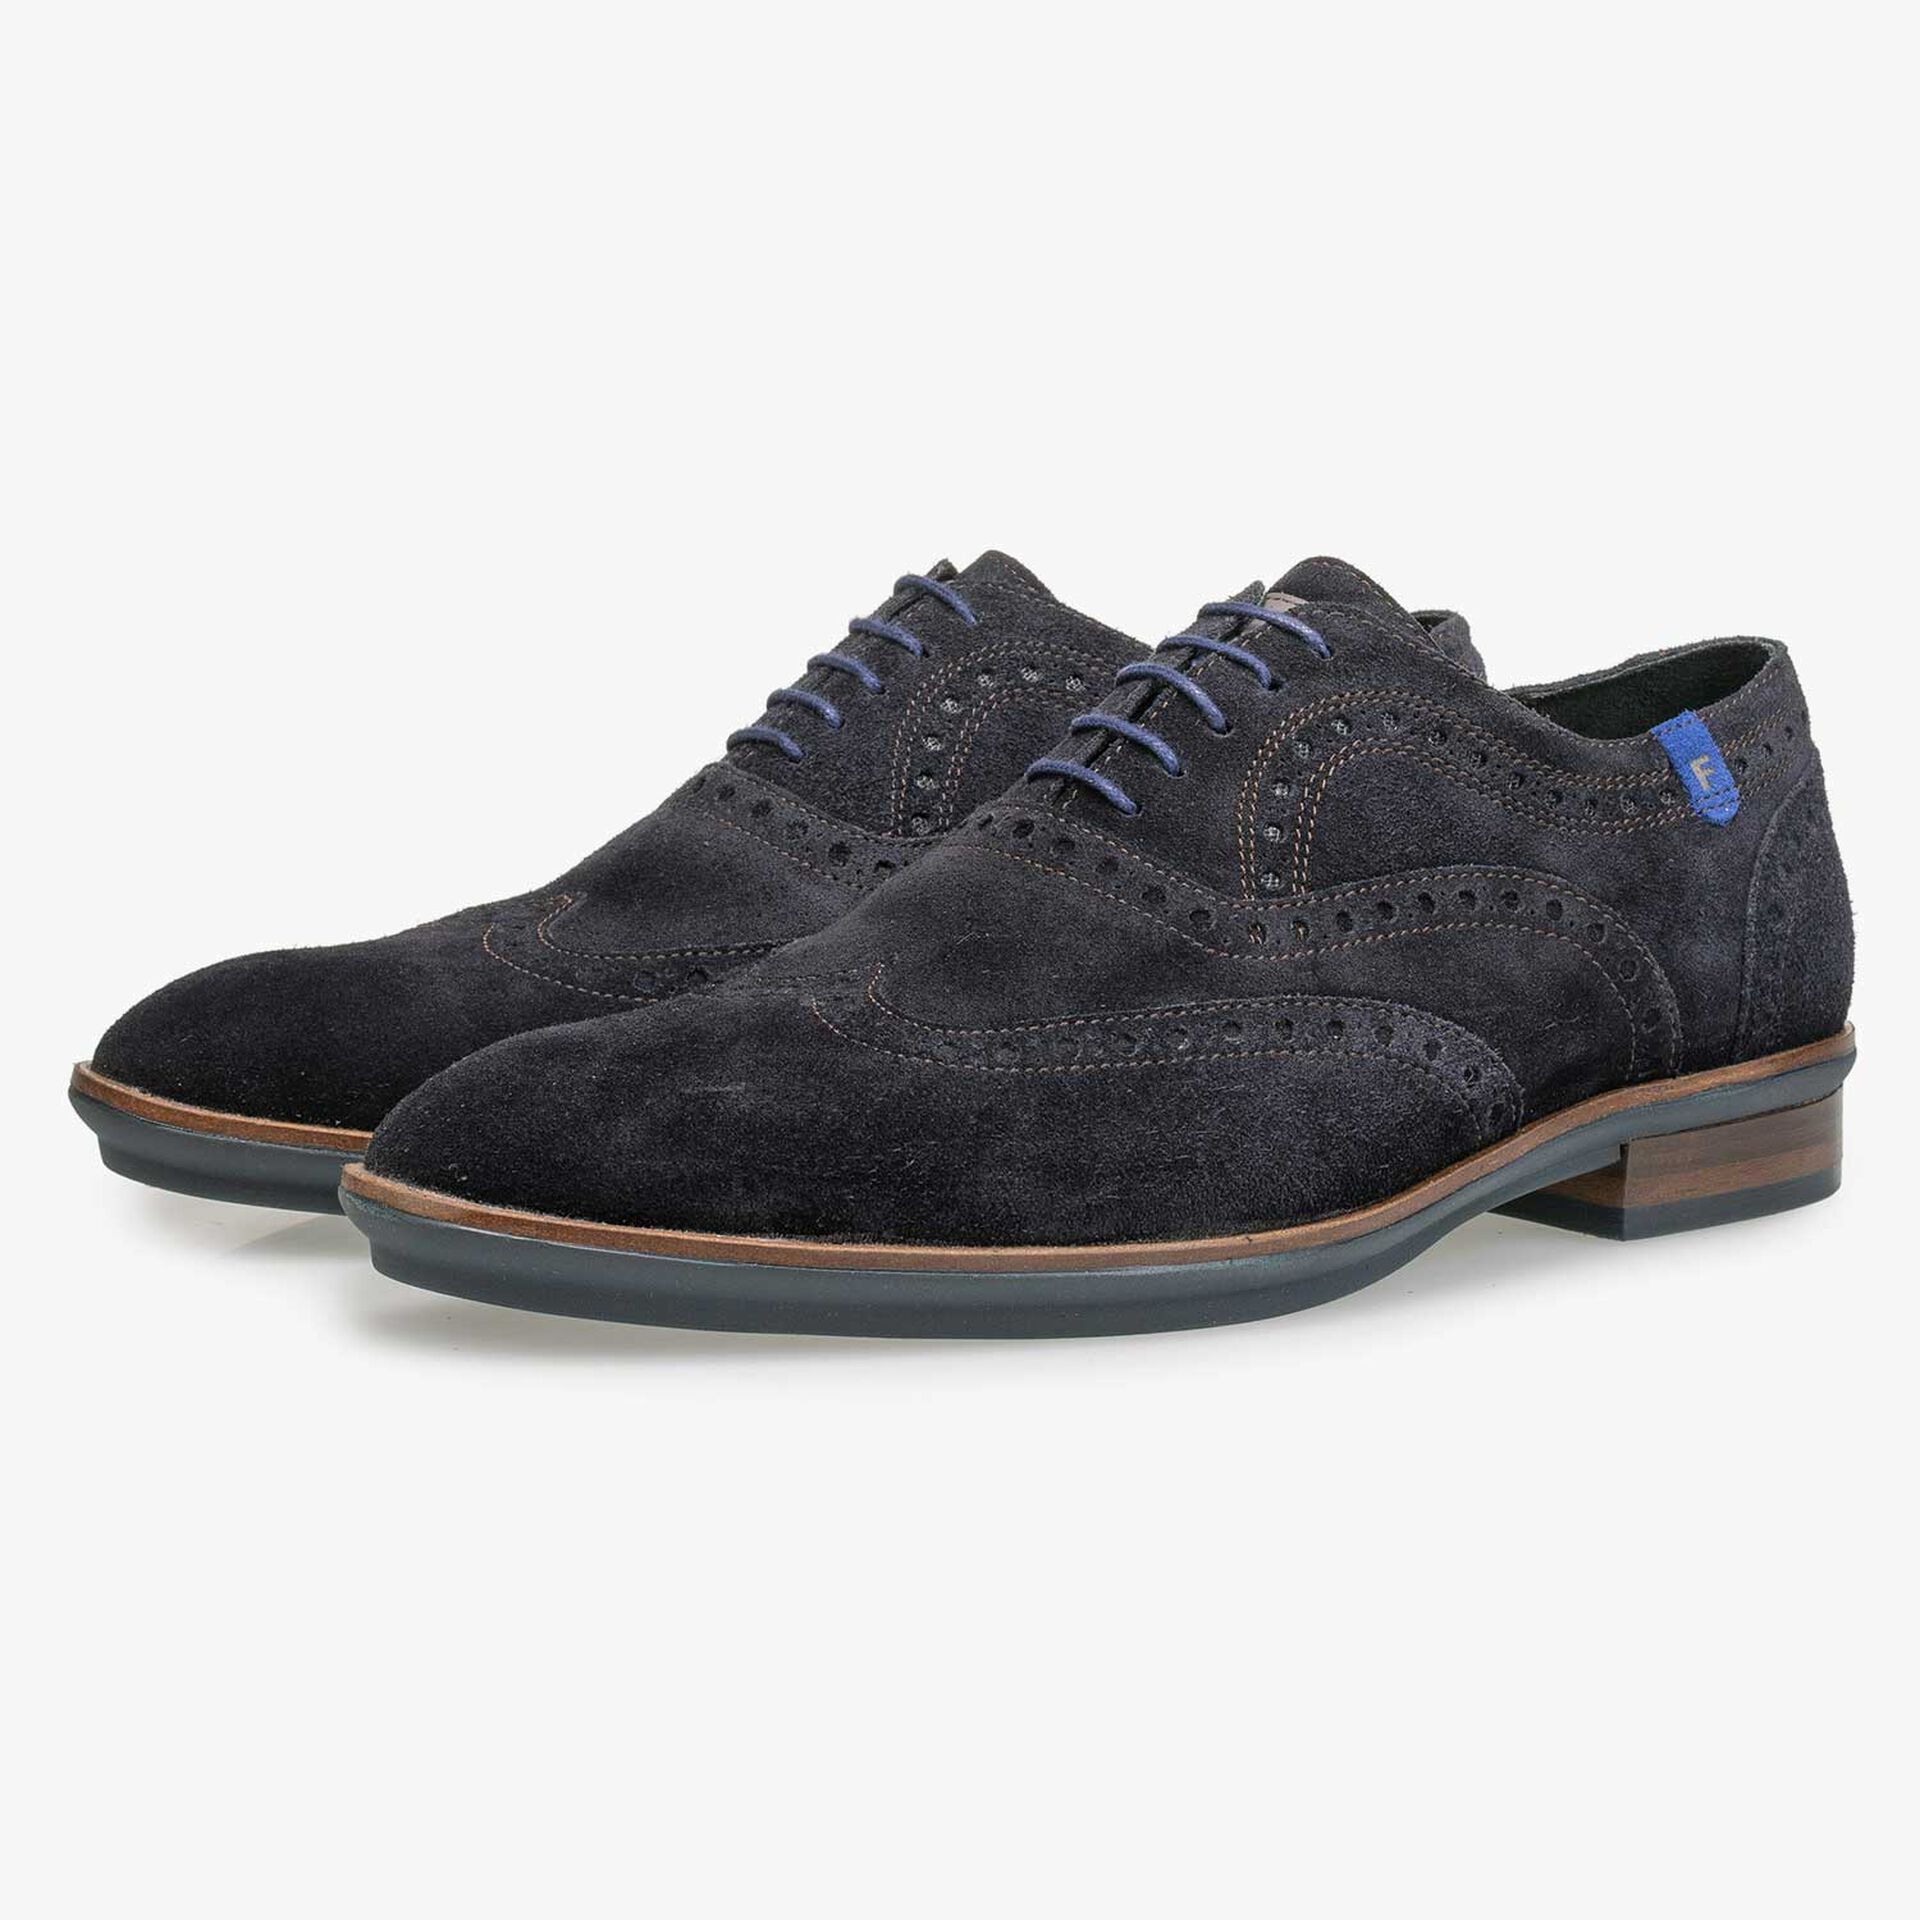 Blue brogue suede leather lace shoe